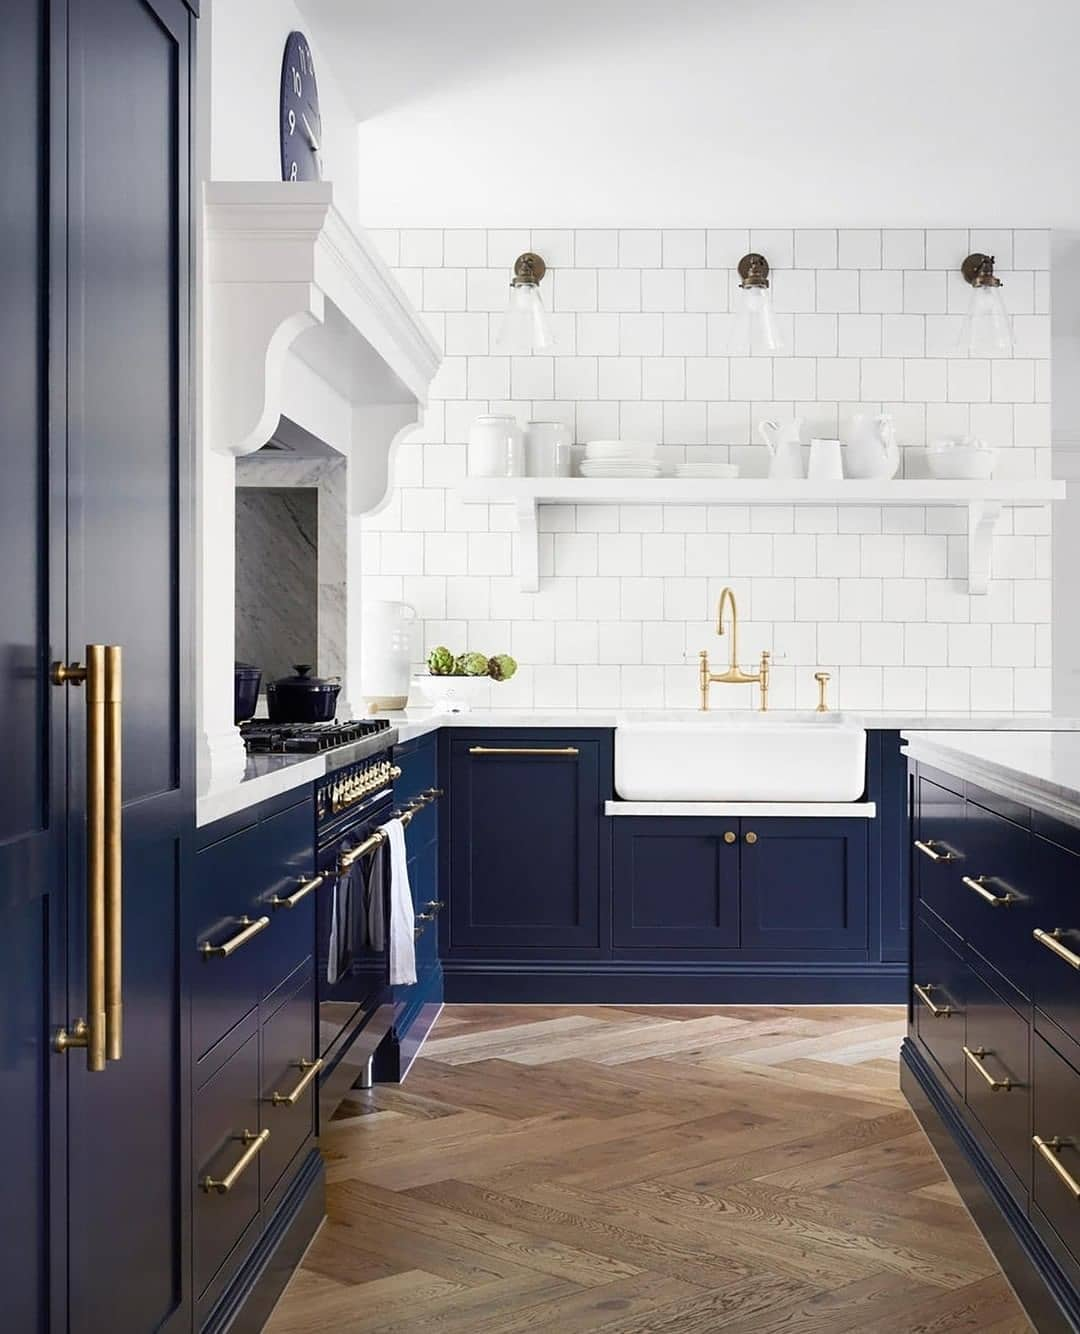 With a clean white splashback and basin ...